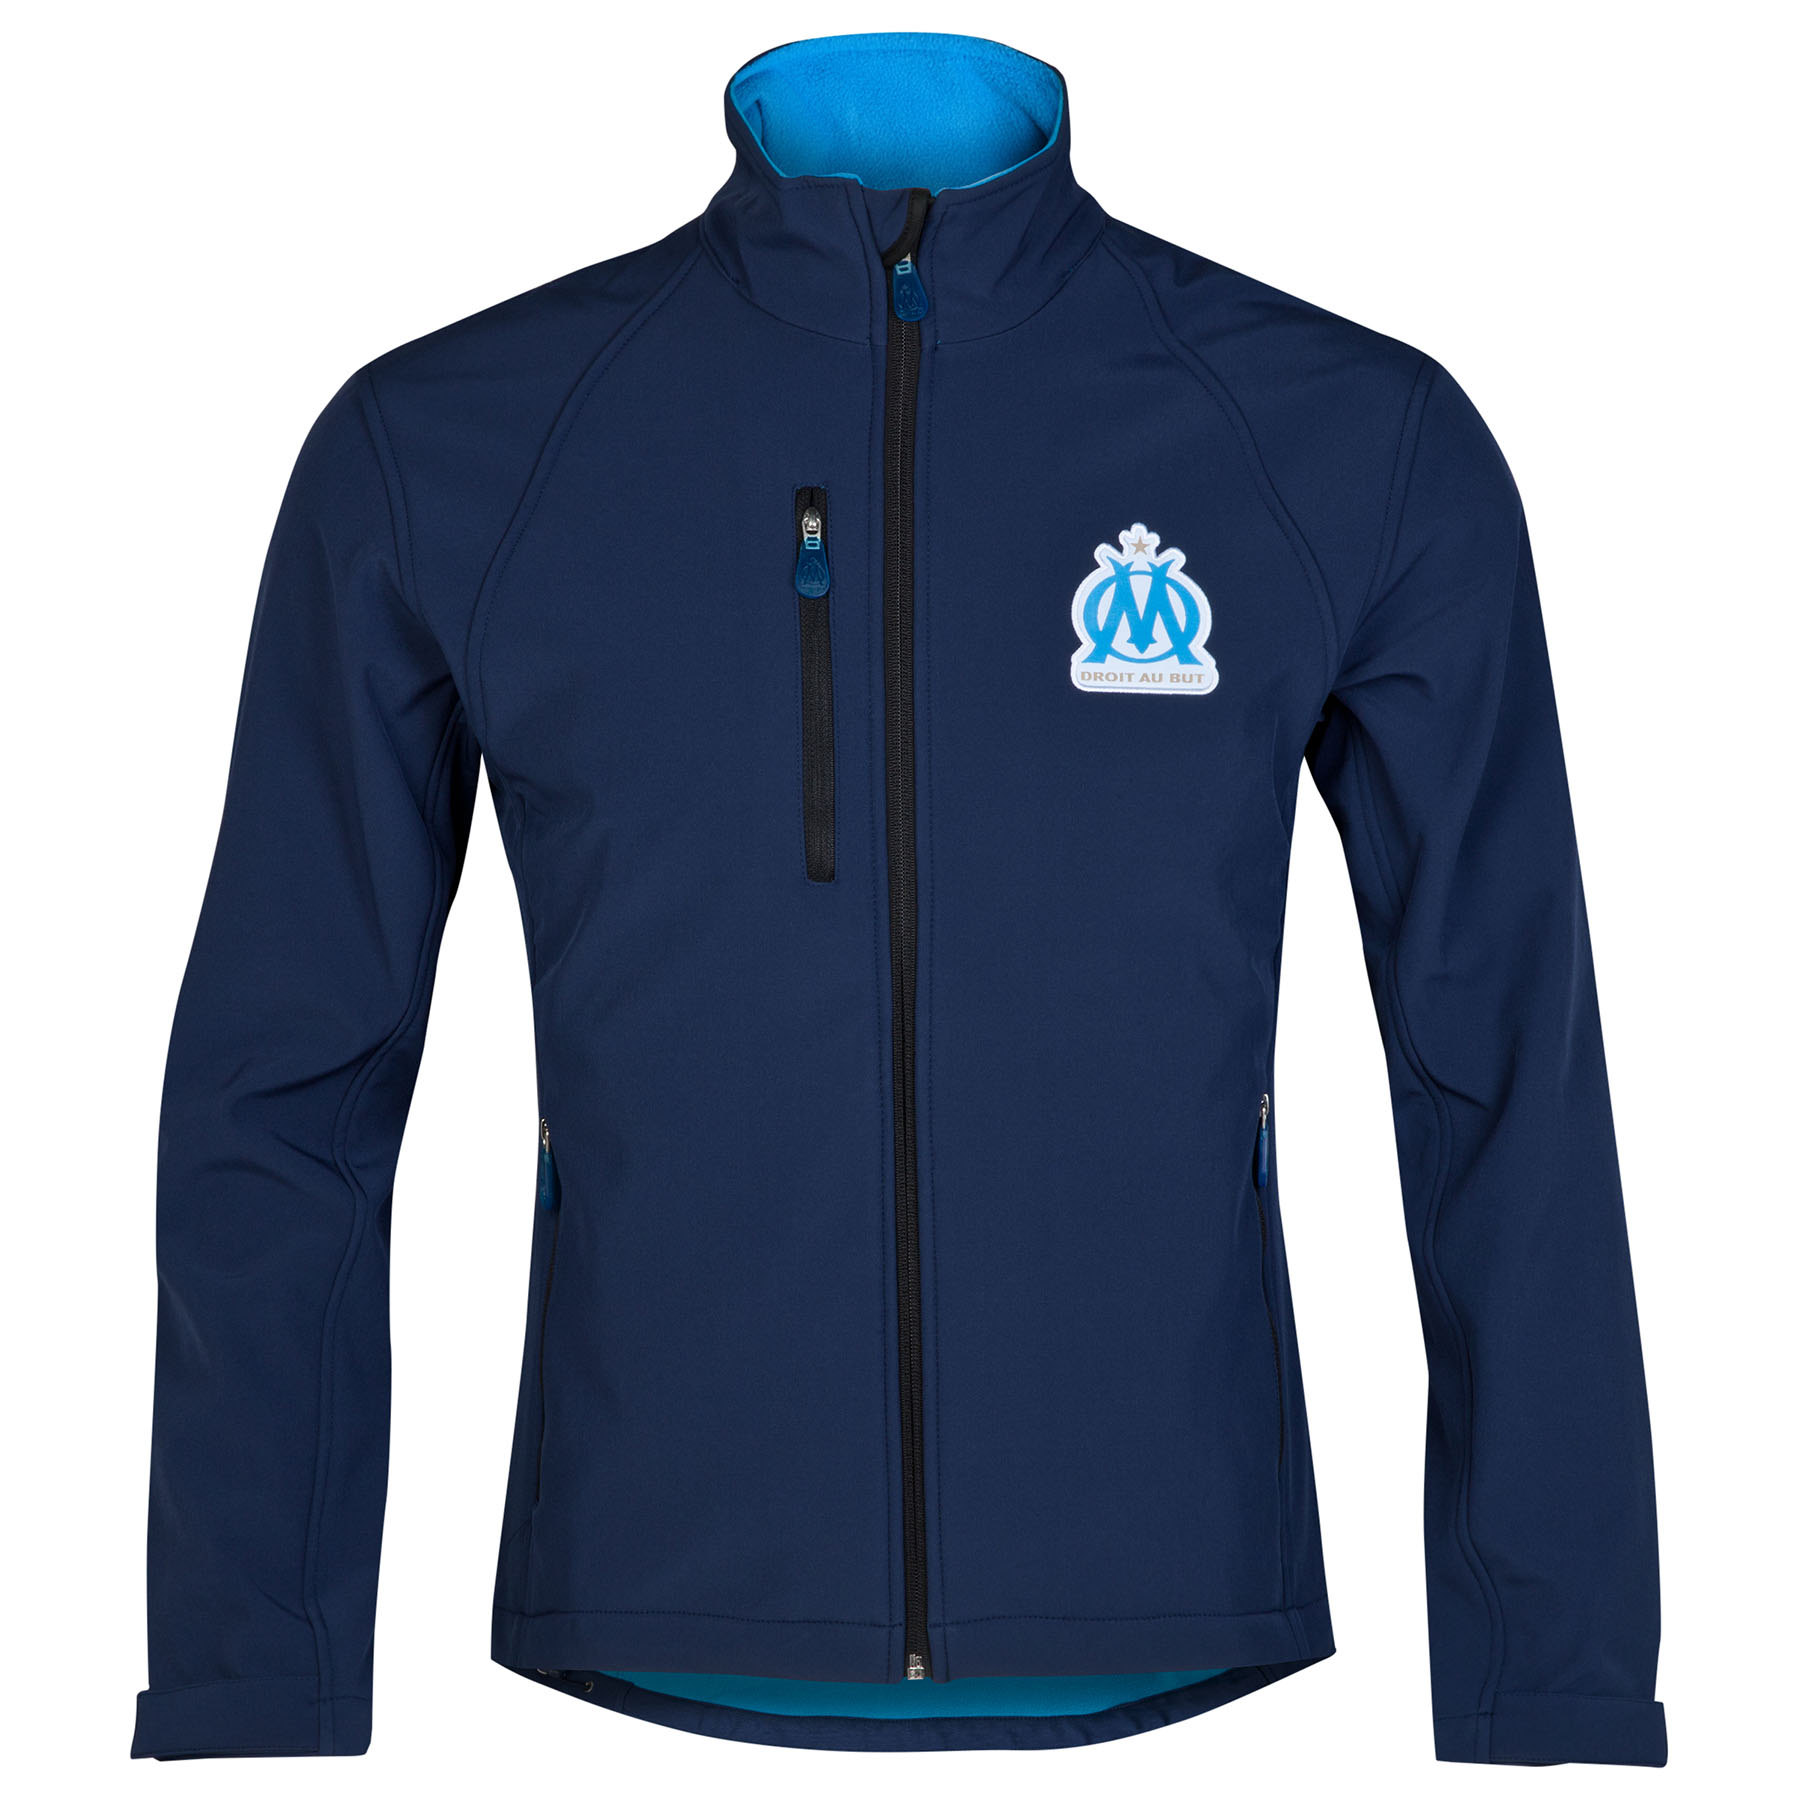 Olympique de Marseille Soft Shell Jacket - Marine - Mens